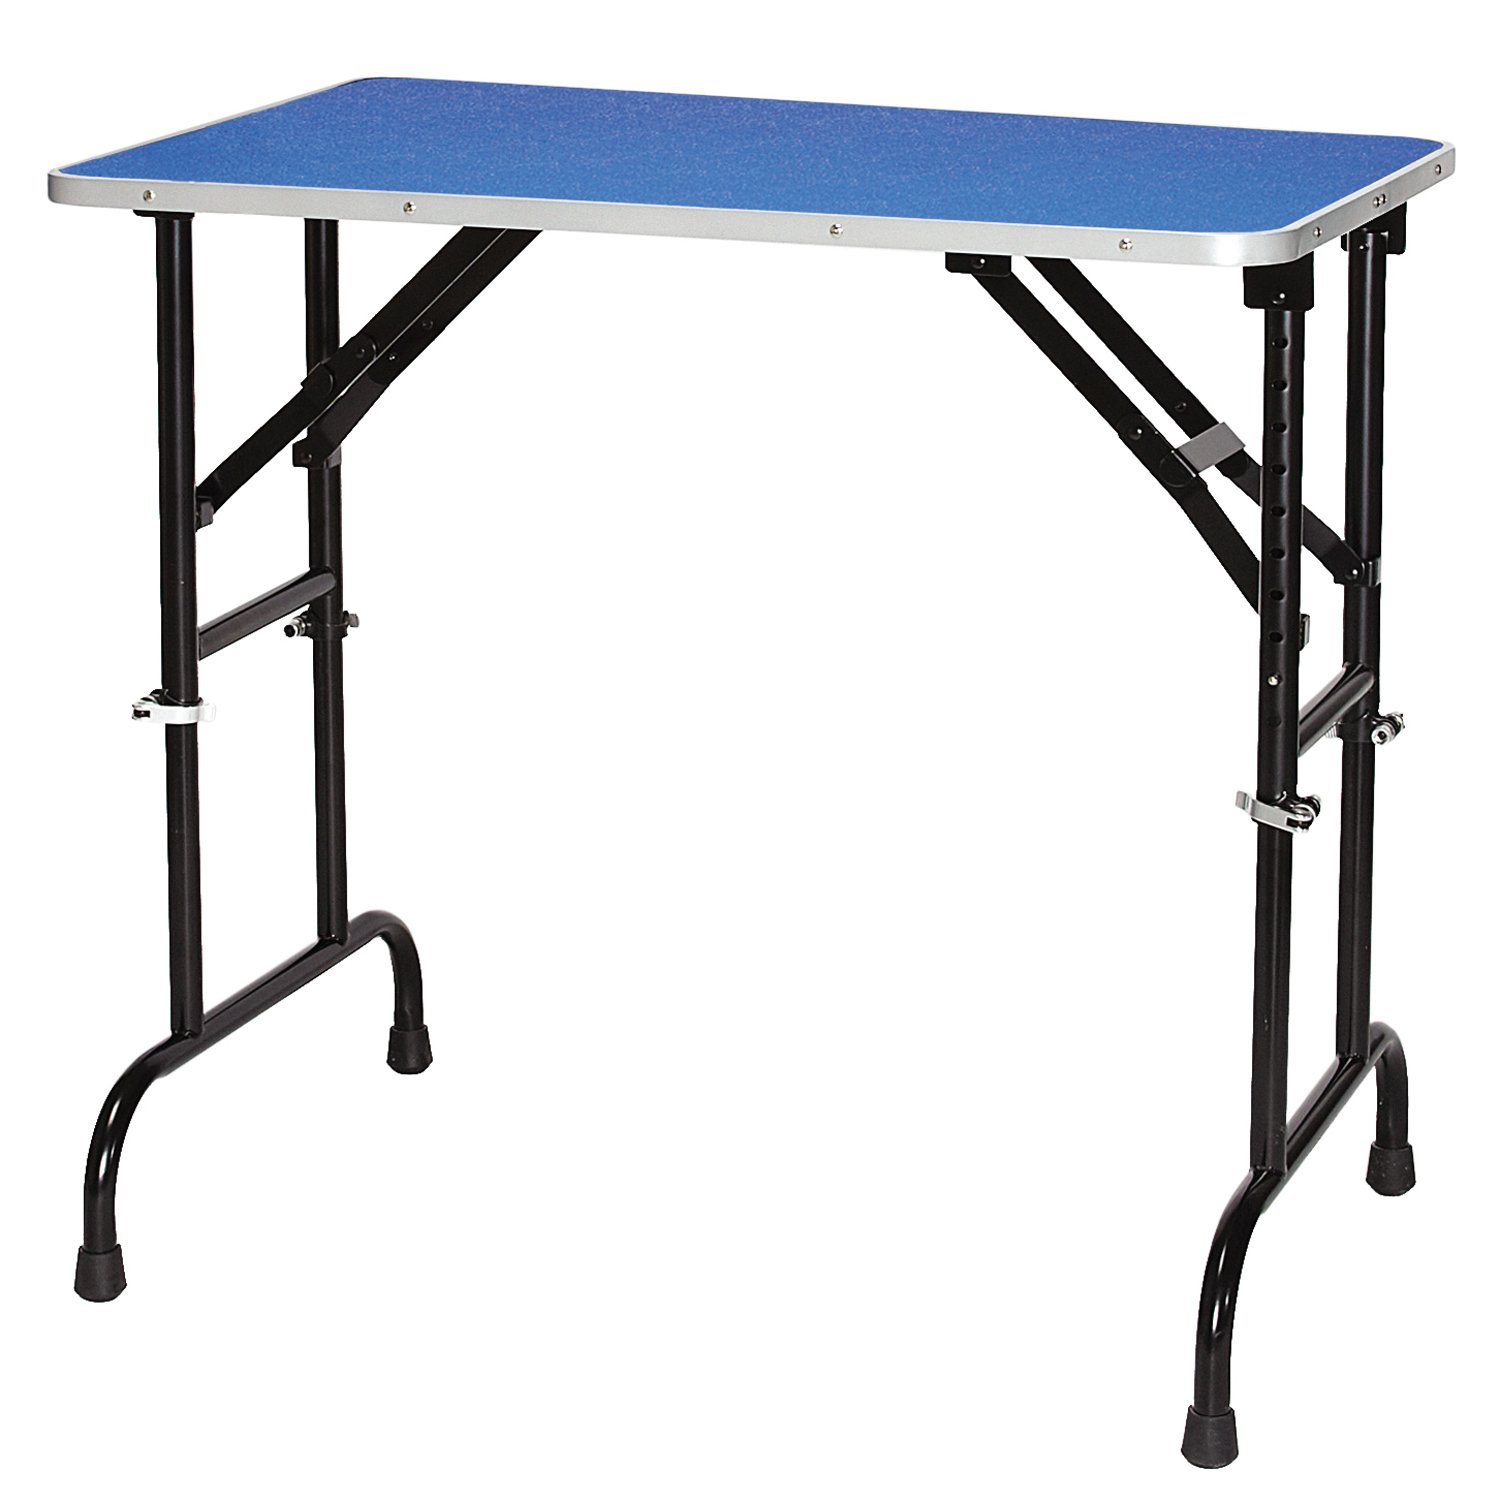 bluee Master Equipment Adjustable Height Grooming Table for Pets, 36 by 24-Inch, bluee